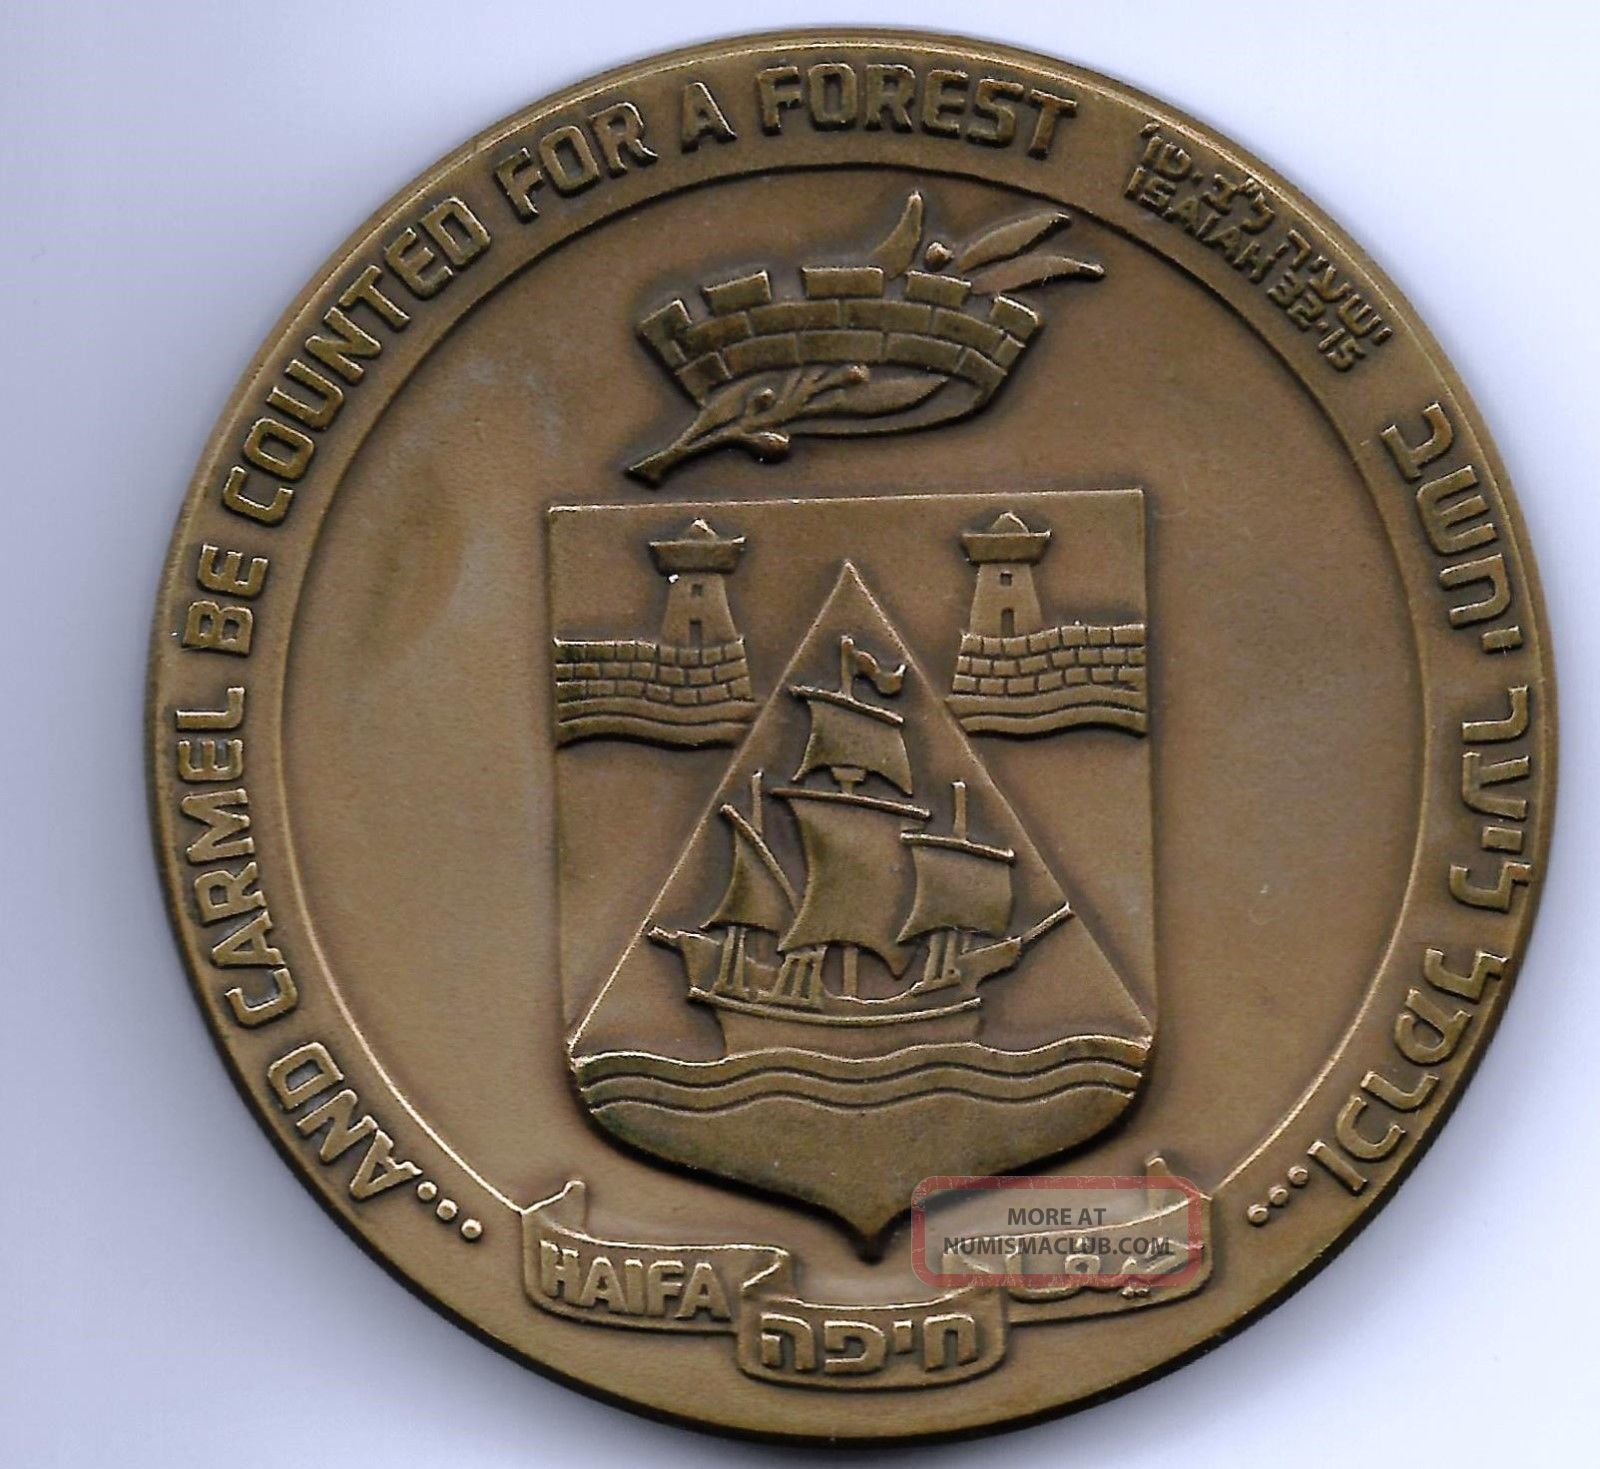 Israel City Of Haifa Bronze Medal 59 Mm,  93 Grams (183) Middle East photo